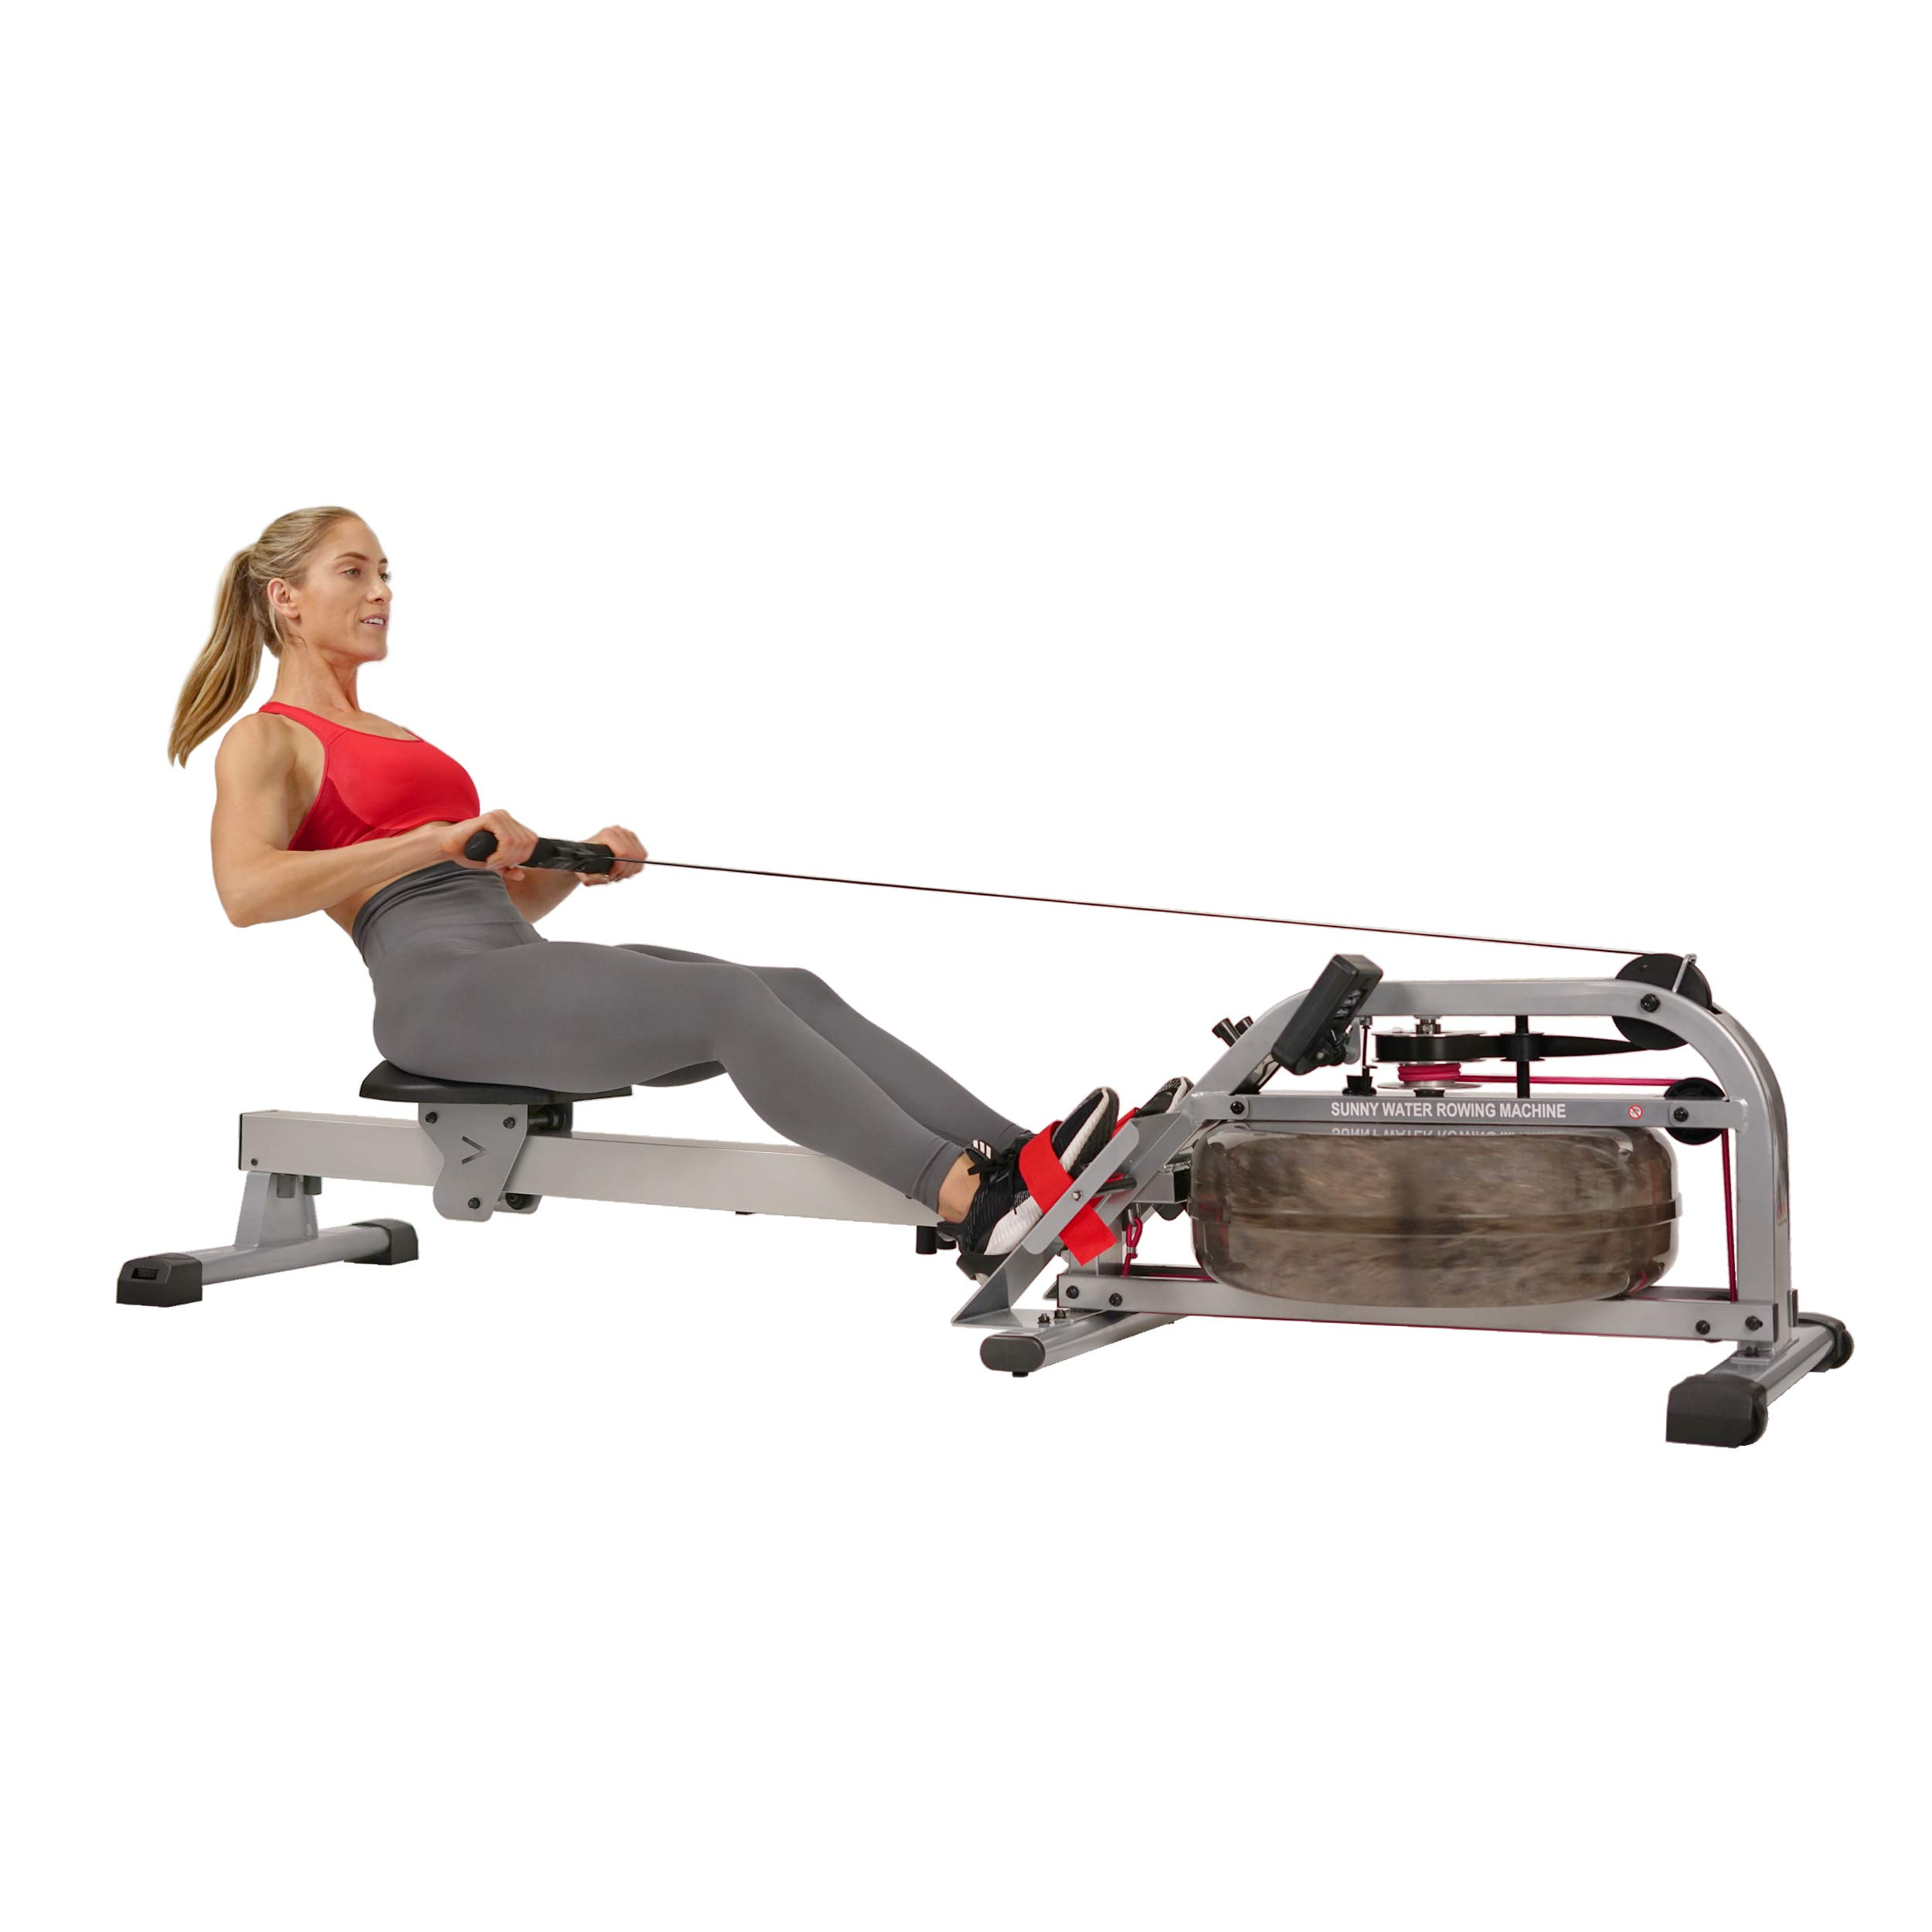 Sunny Health & Fitness Water Rowing Machine Rower w/LCD Monitor - SF-RW5866 by Sunny Health & Fitness (Image #1)